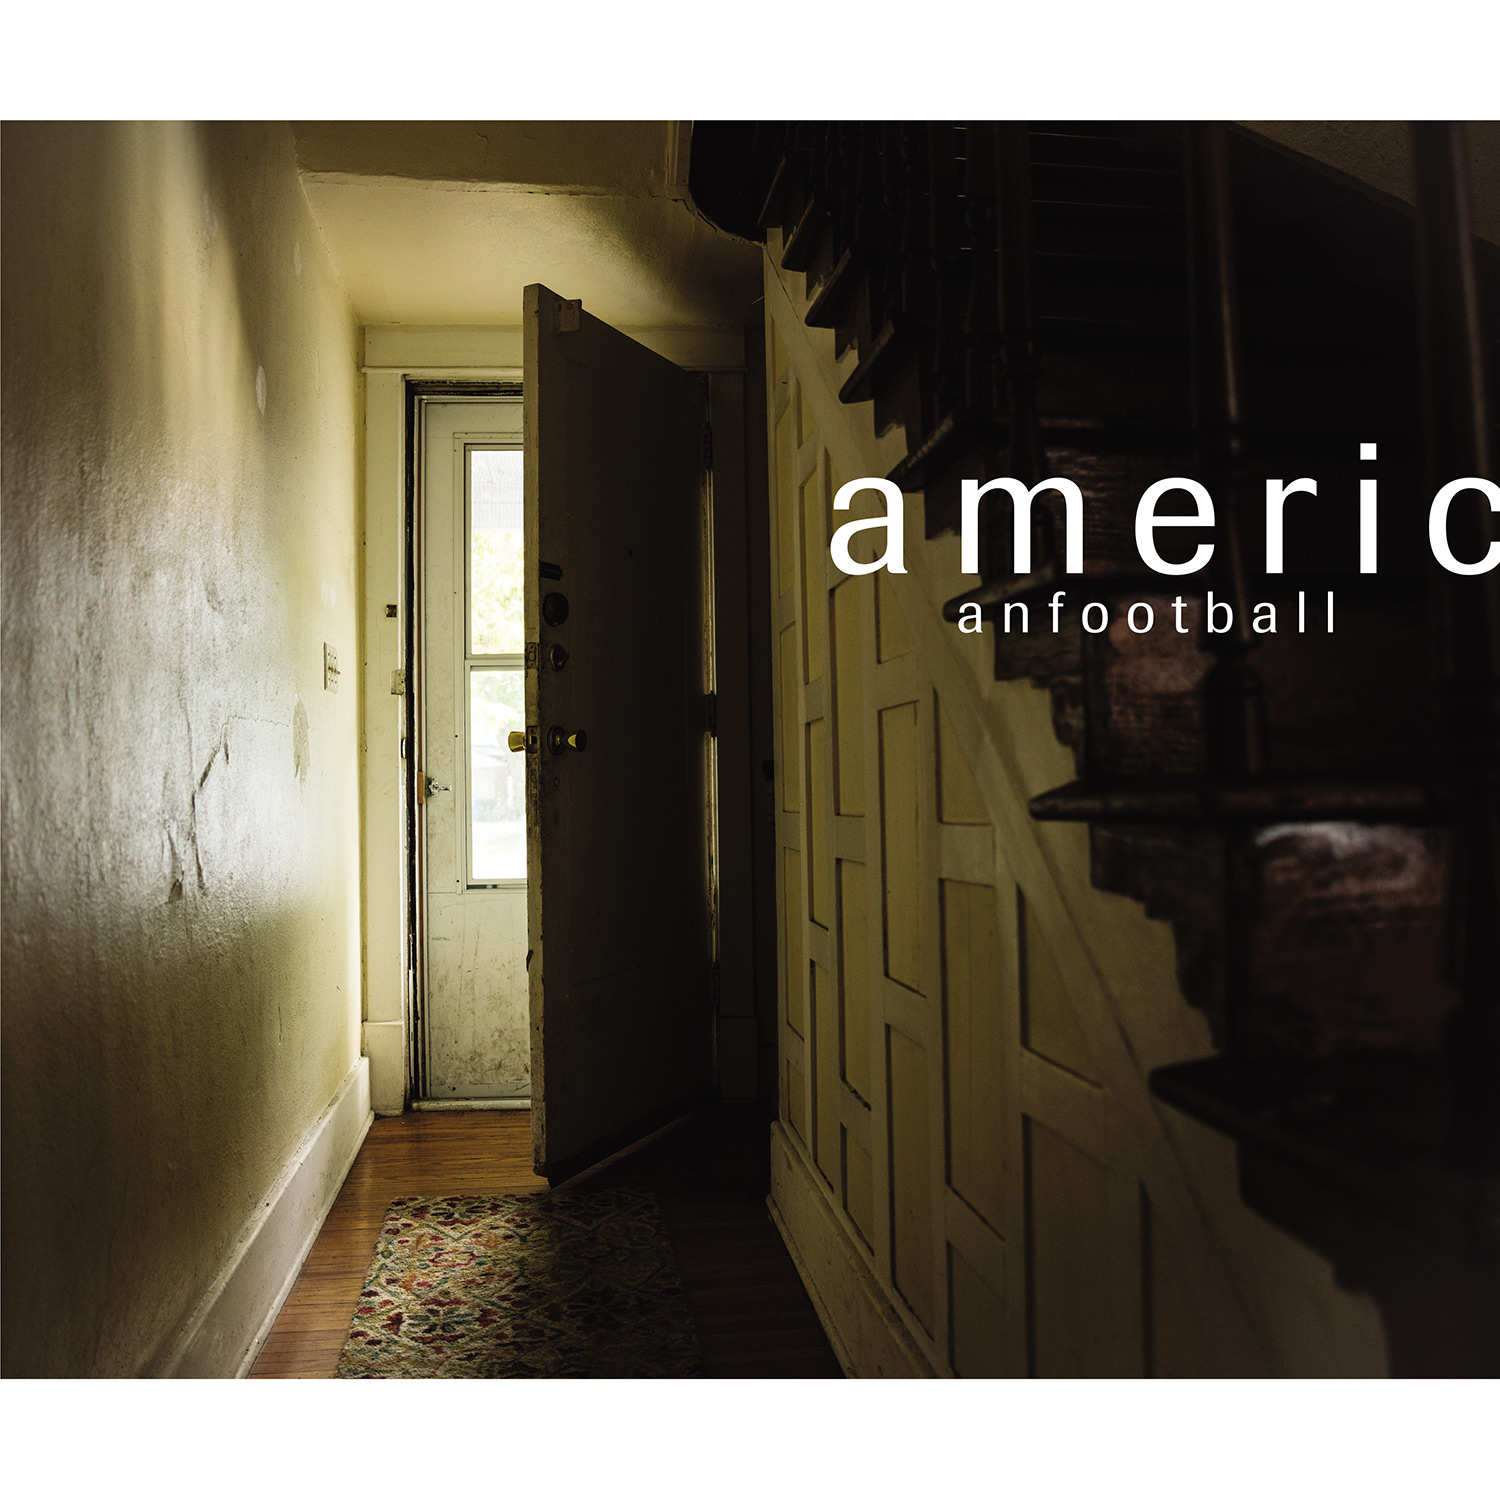 American Football announce second album - seventeen years (!) after their first